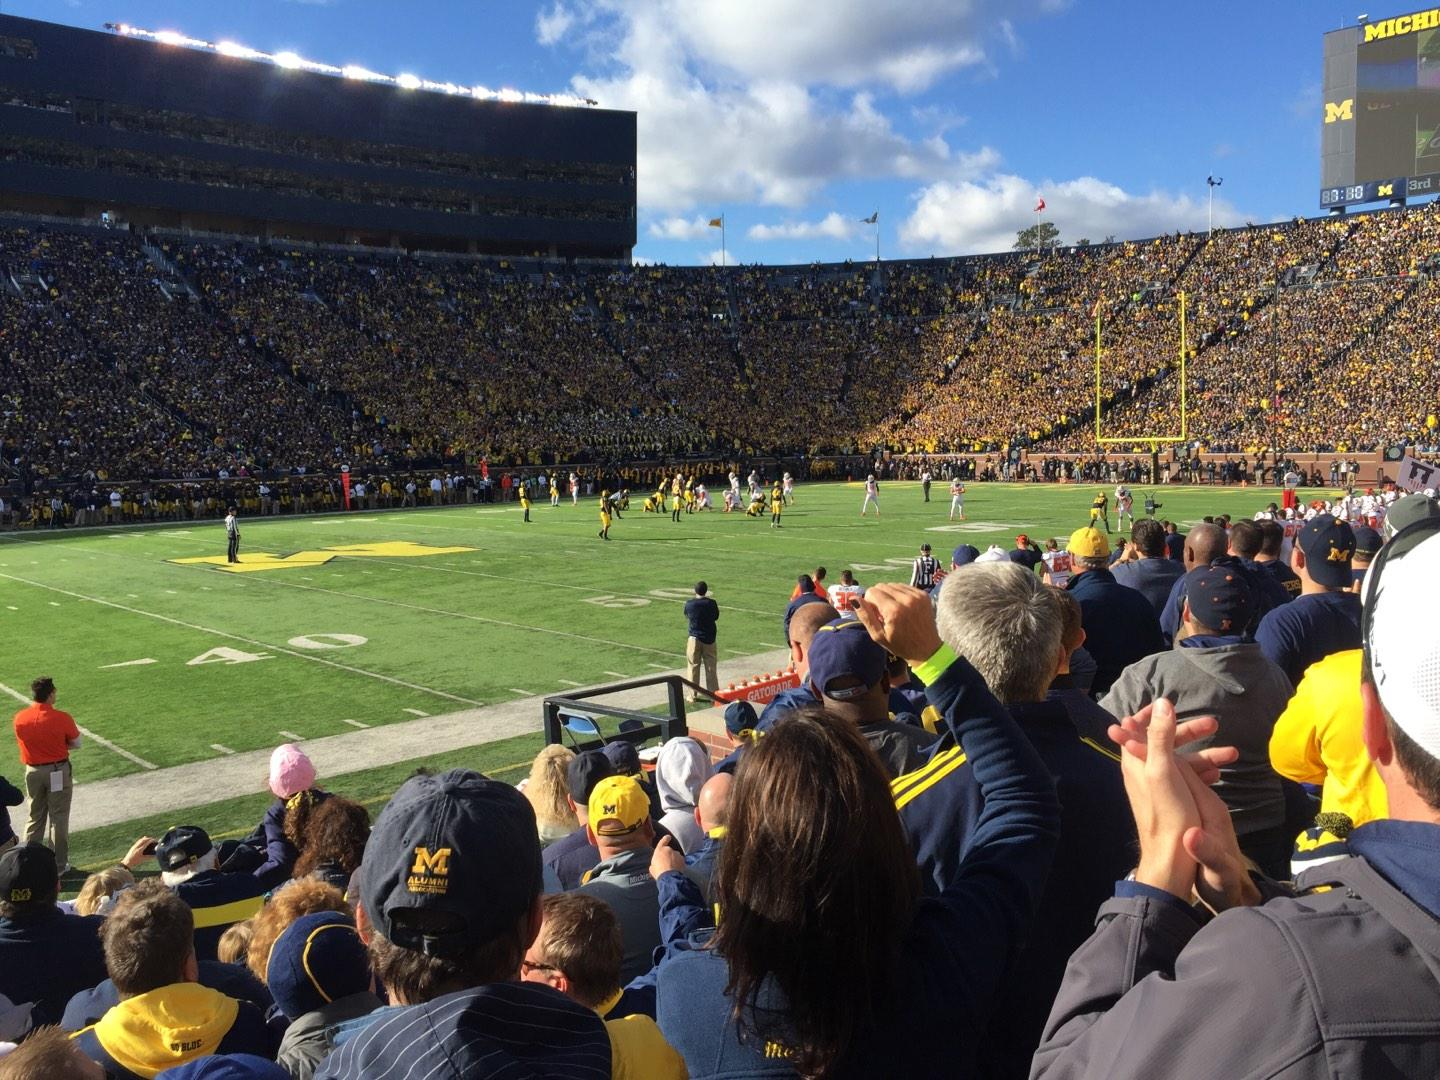 Michigan Stadium Section 3 Row 6 Seat 25